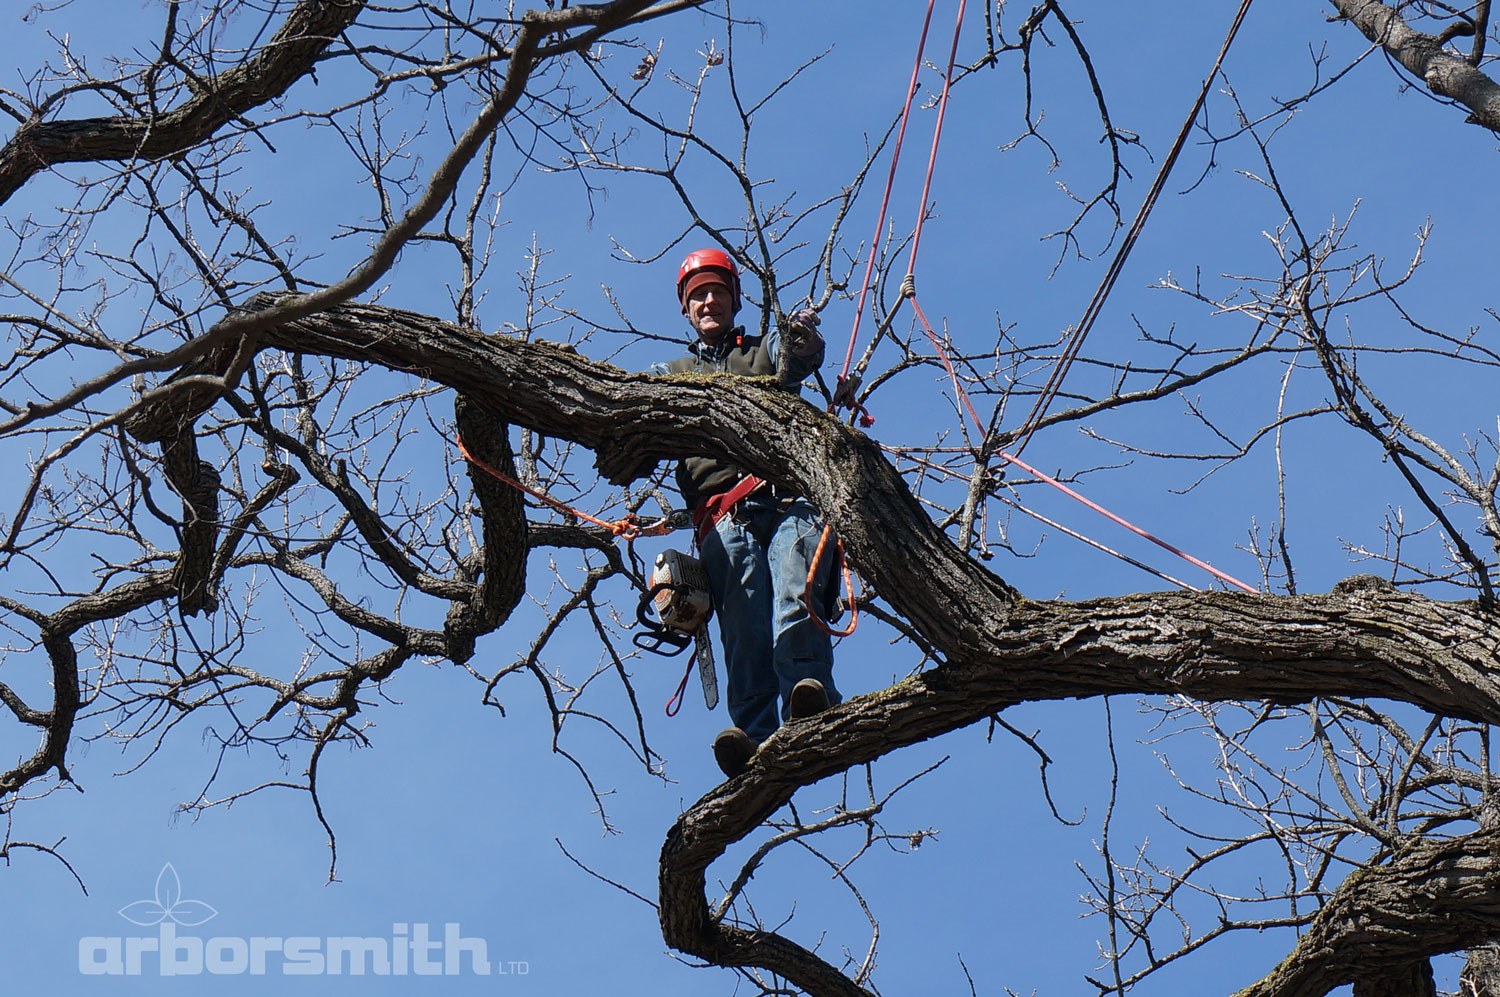 Gilbert A Smith, ISA Board Certified Master Arborist climbing and trimming a Burr Oak tree in the winter.